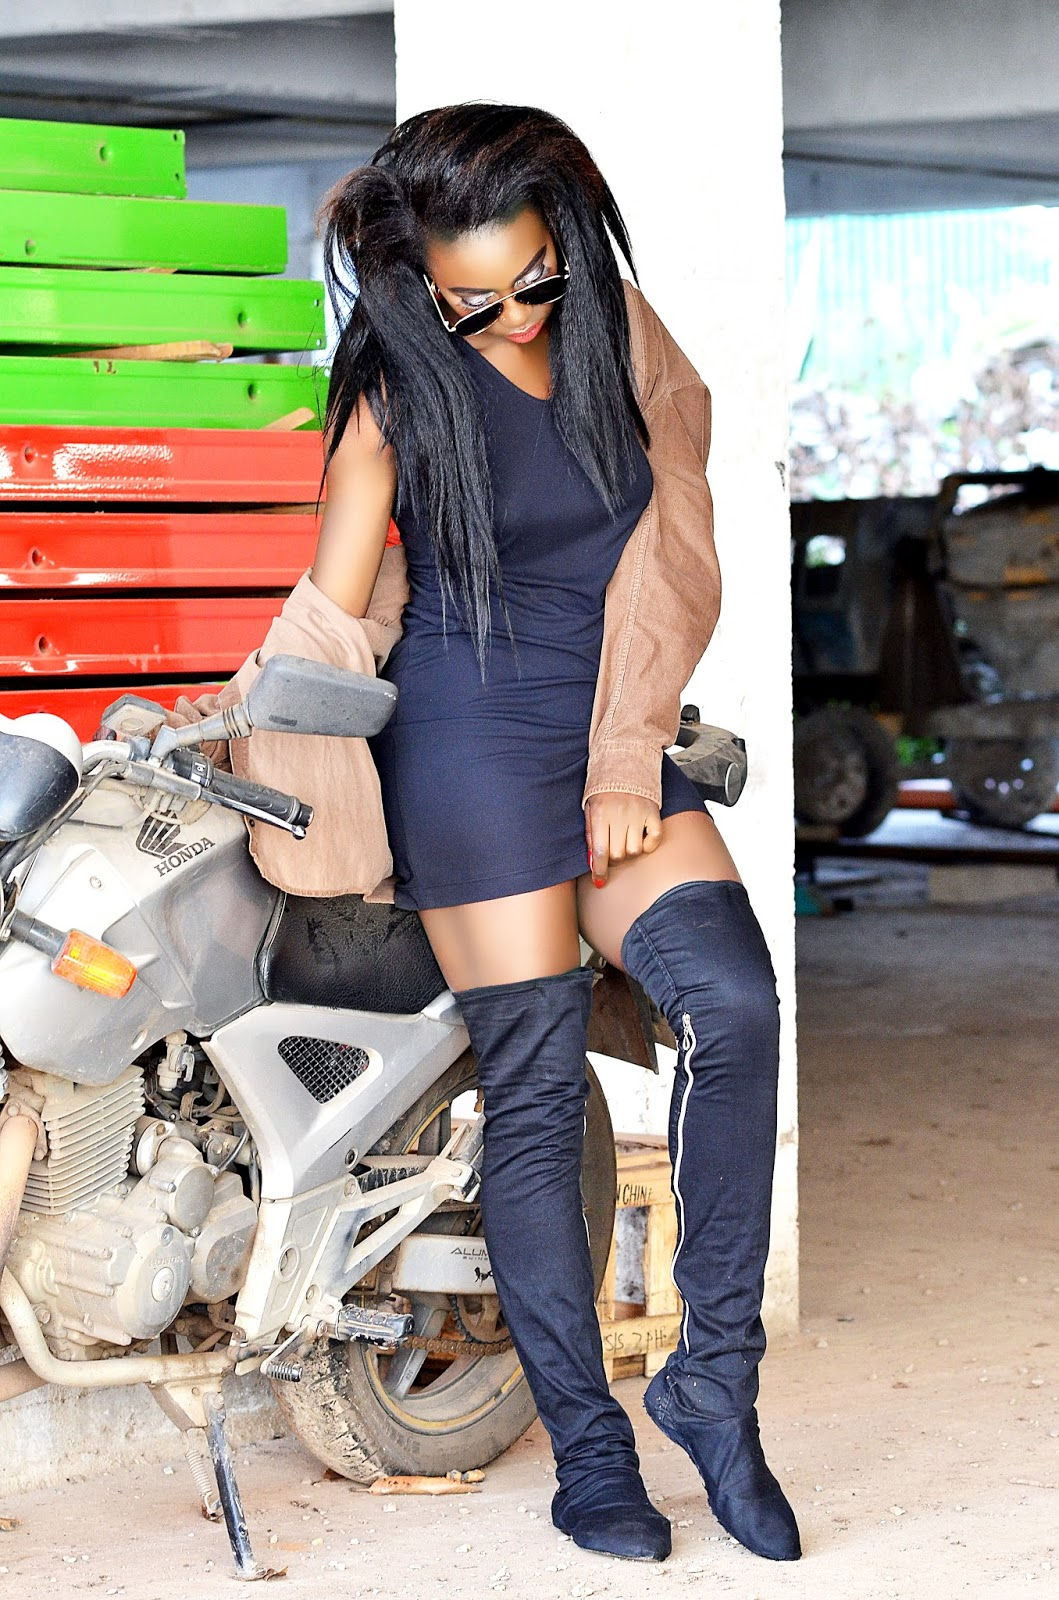 lbd and thigh high outfit, how to style thigh high boots, style with Ezil, Ezil, Kenyan fashion blogger.